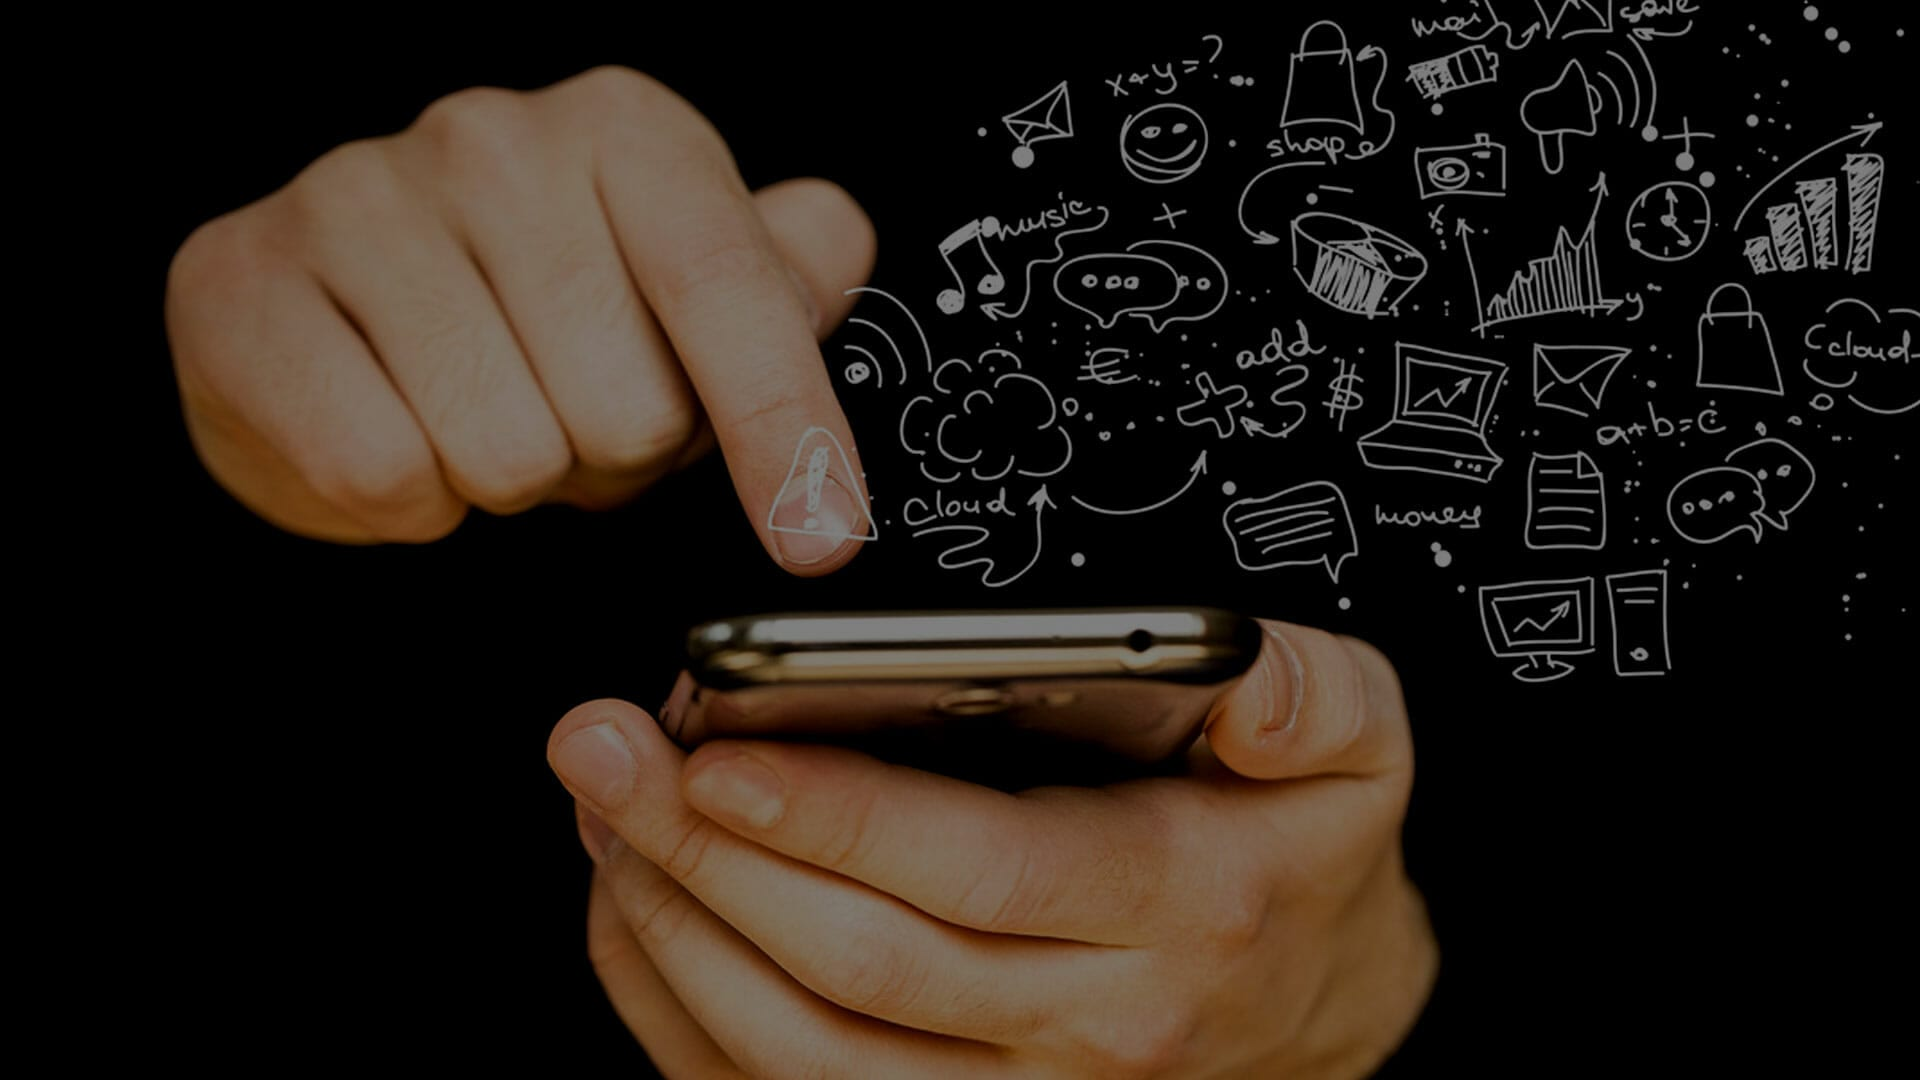 Mobile UX: 9 Things You Can Do To Make Visitors Fall In Love With Your Mobile Site